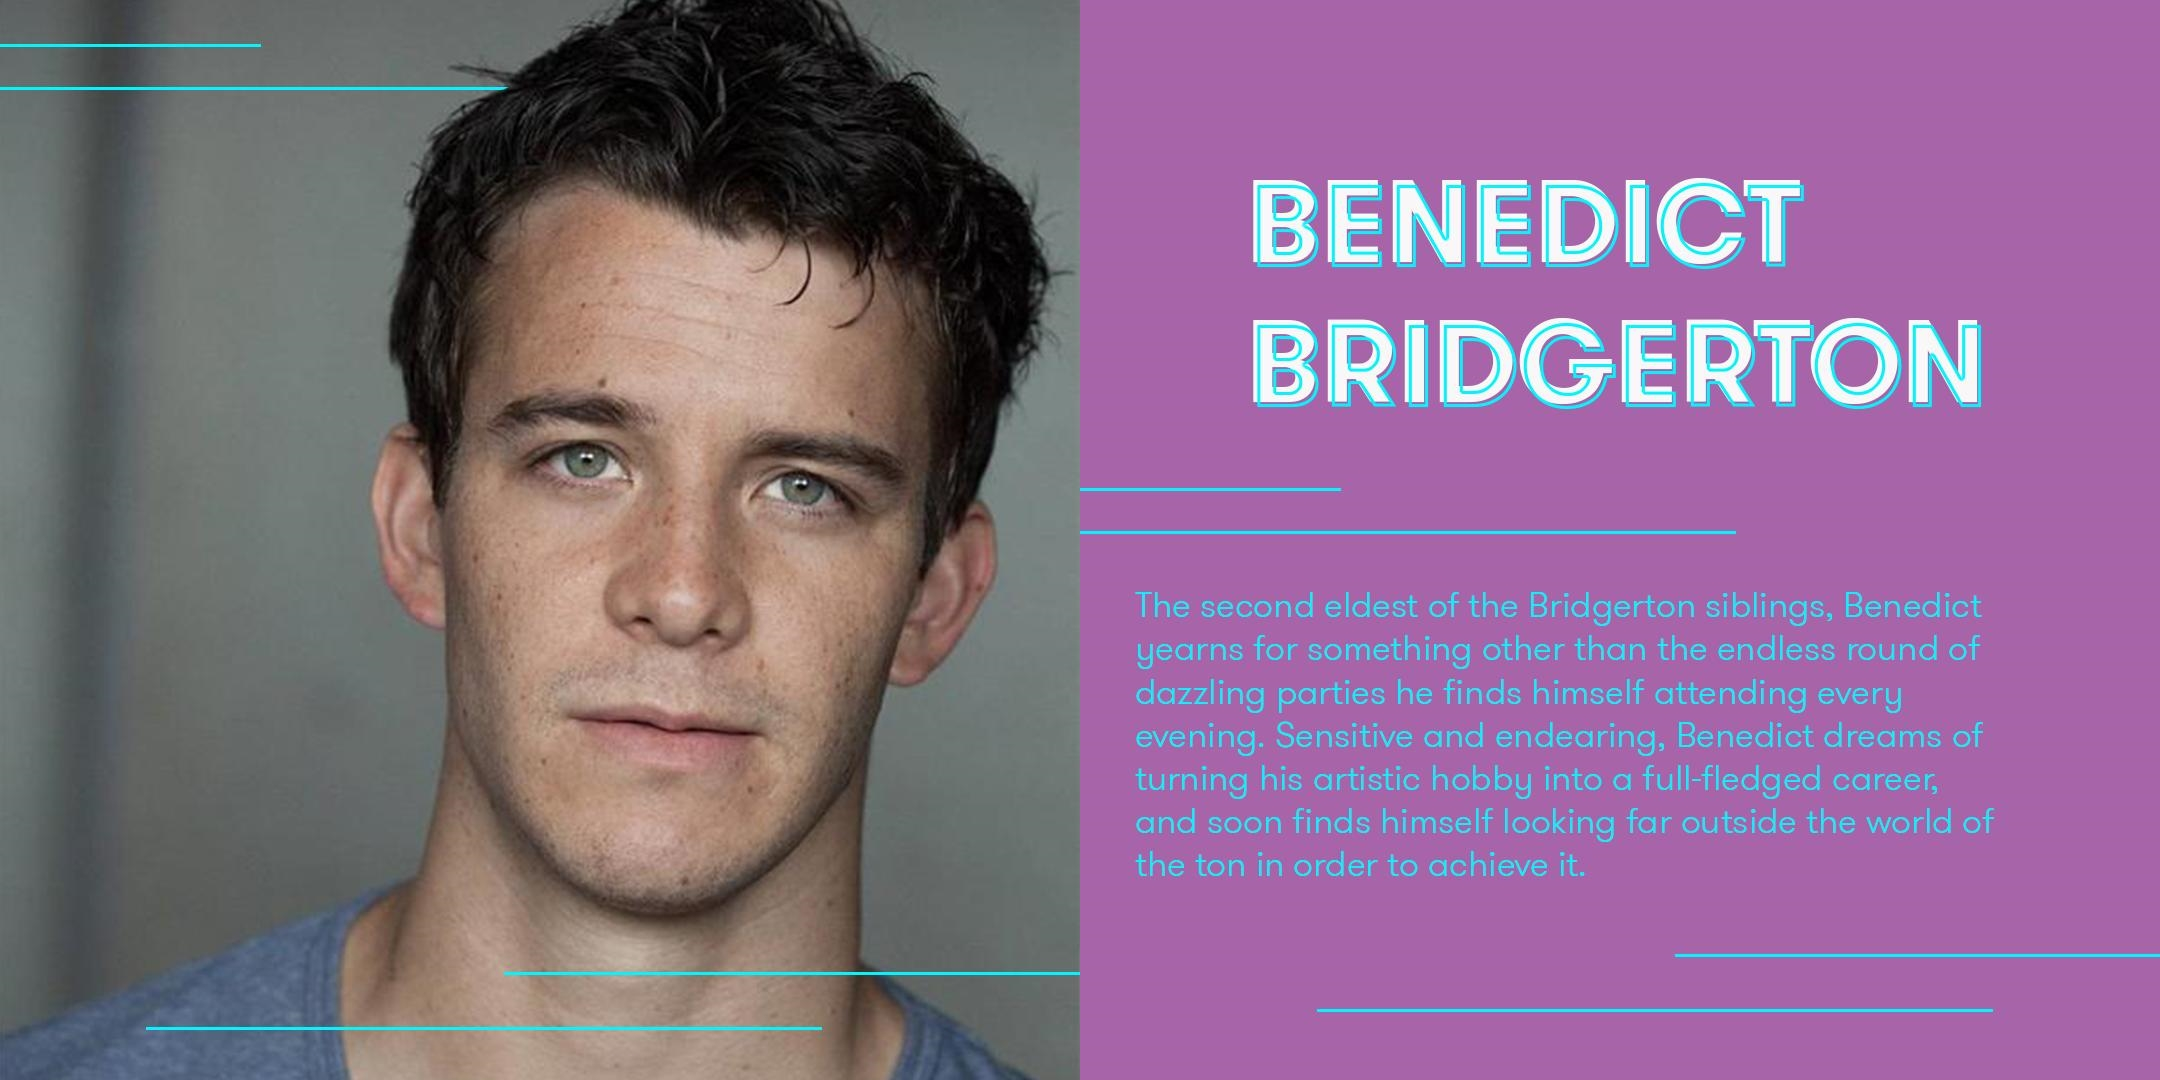 Luke Thompson cast as Benedict Bridgerton - Bridgerton